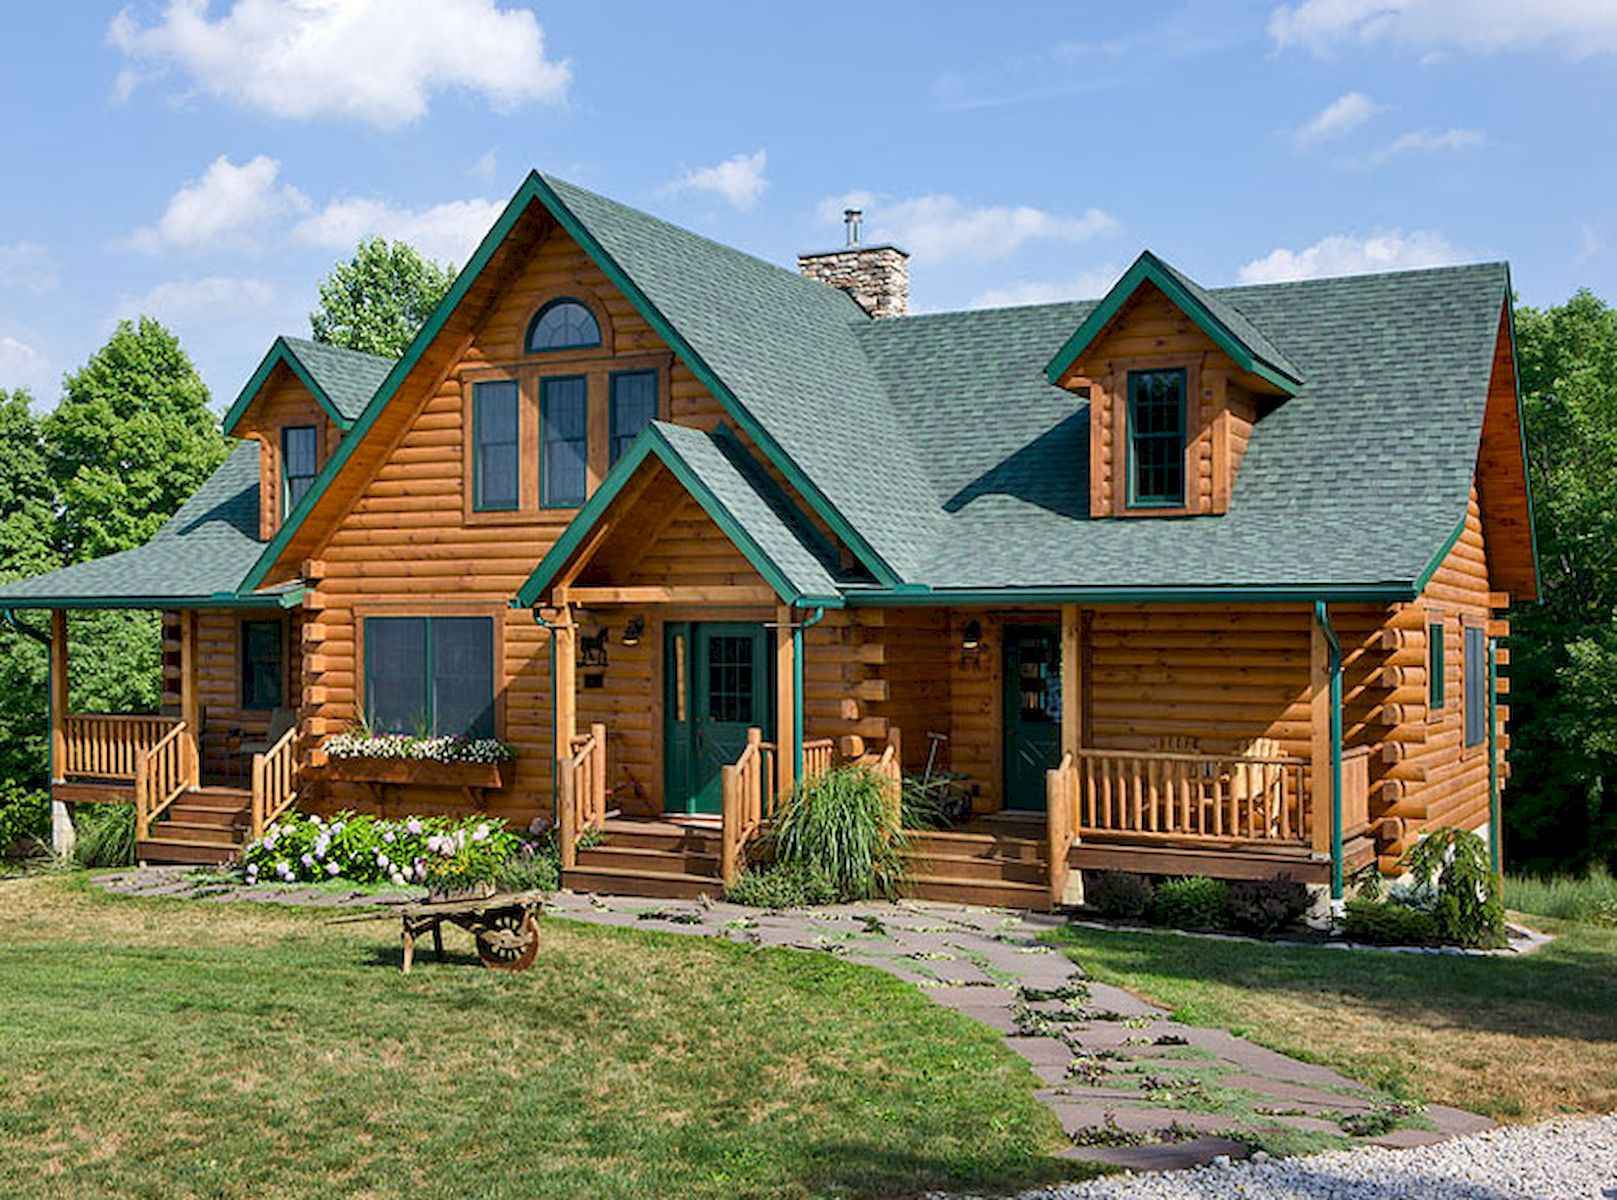 60 Rustic Log Cabin Homes Plans Design Ideas And Remodel (43)